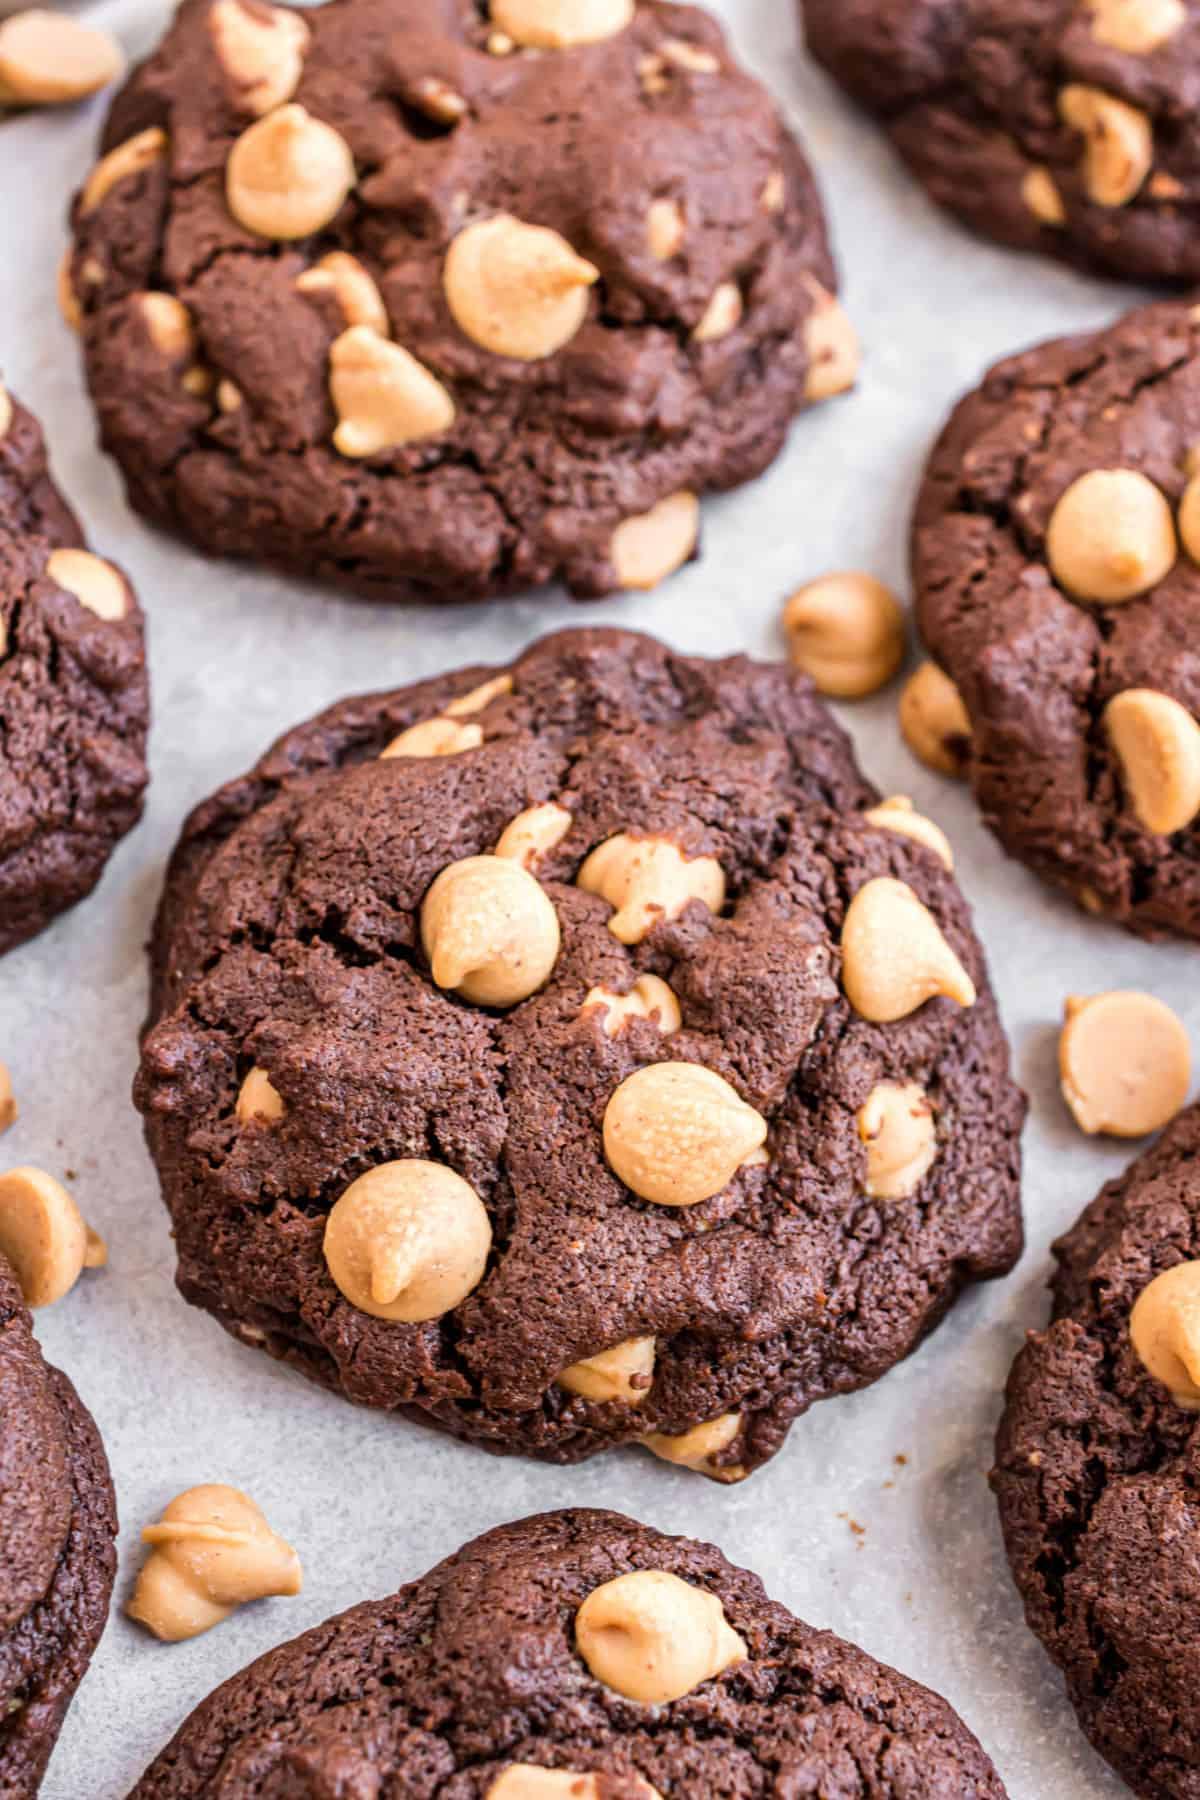 Chocolate cookies with peanut butter chips on a parchment paper lined cookie sheet.